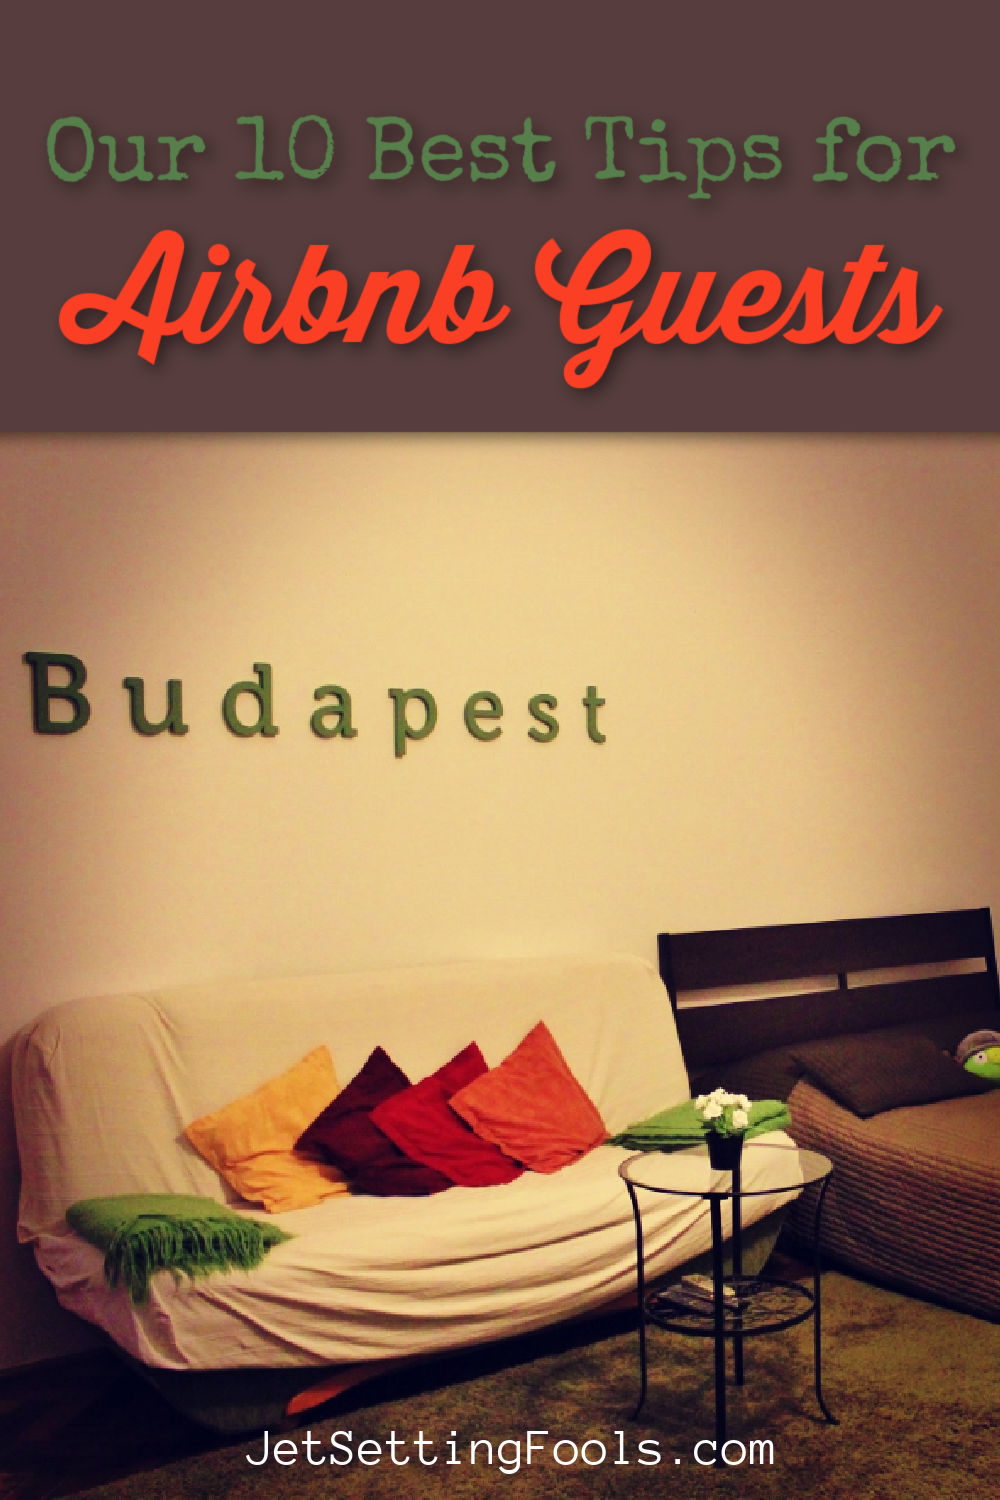 Our 10 Best Tips for Airbnb Guests by JetSettingFools.com